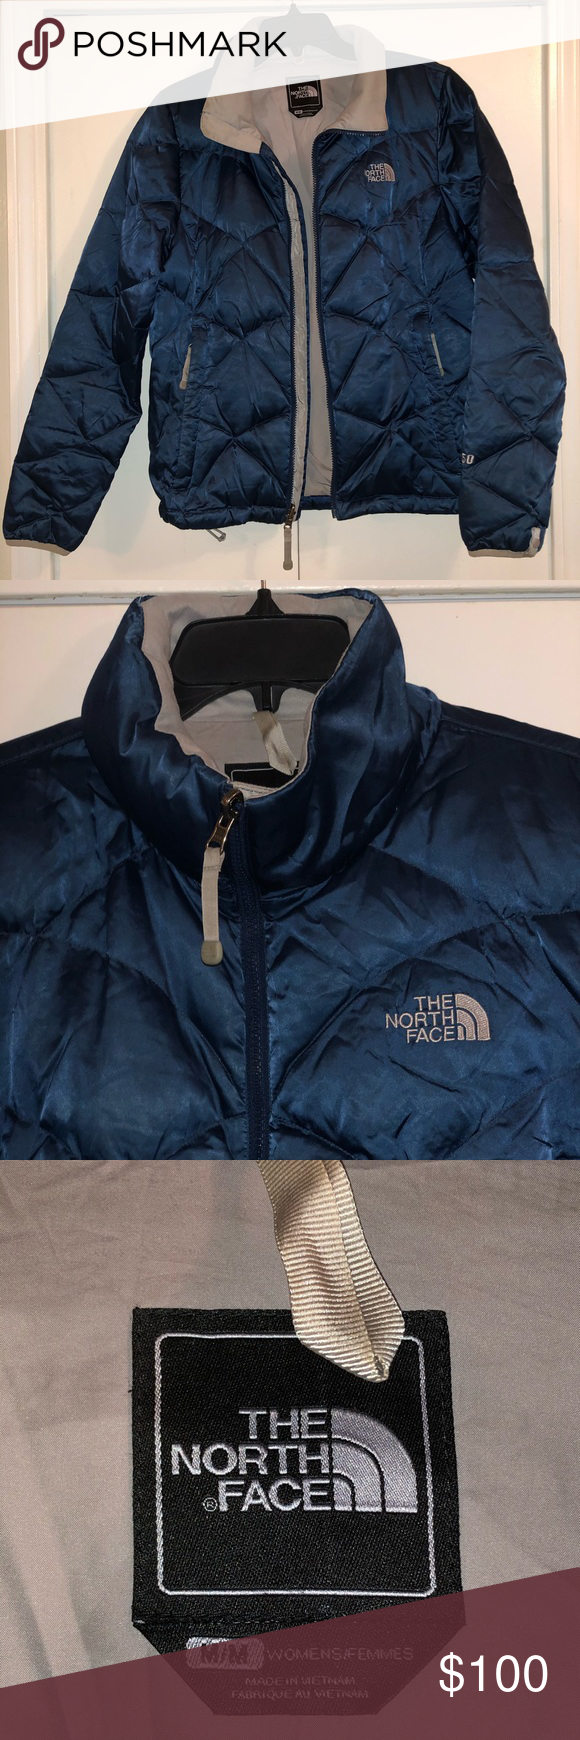 The North Face 550 Navy Down Puffer 550 Jacket Puffer Jacket Women Clothes Design Jackets For Women [ 1740 x 580 Pixel ]